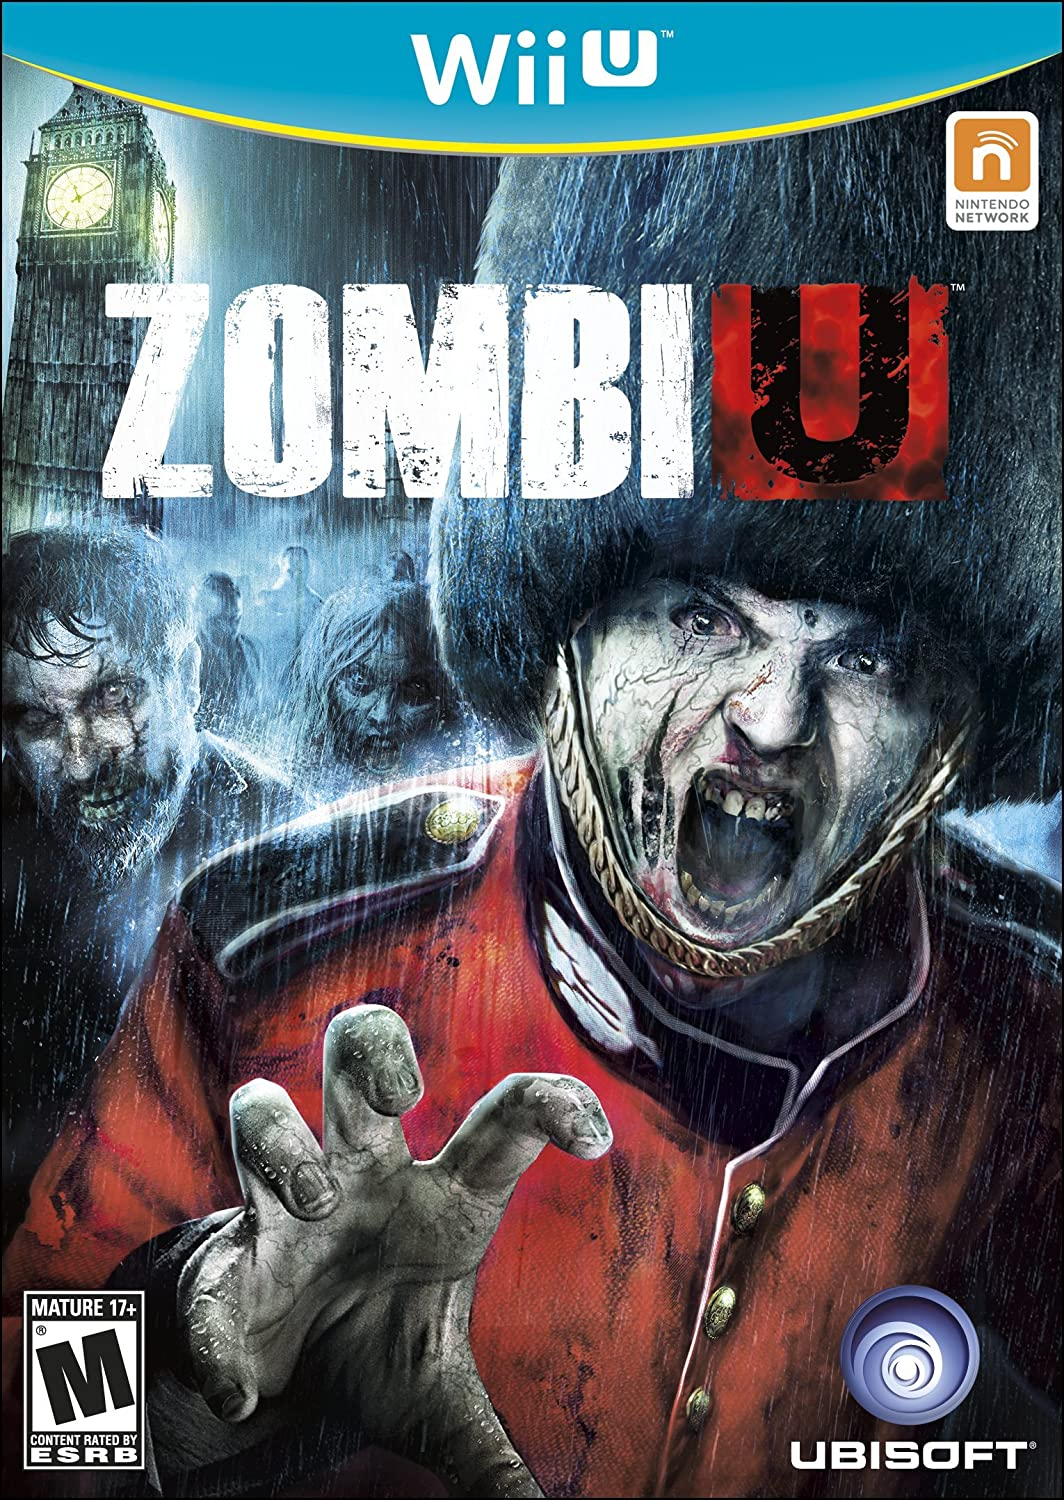 Amazon.com: ZombiU - Nintendo Wii U: Video Games on monster hunter 4 map, dark souls map, teslagrad map, don't starve map, the walking dead map, dead island 2 map, donkey kong country returns map, shovel knight map, cry of fear map, far cry 3 map, crackdown 2 map, evolve map, the legend of zelda map, monster hunter 3 ultimate map, hyrule warriors map, state of decay map, hitman absolution map, the elder scrolls v: skyrim map, bioshock infinite map, lego marvel super heroes map,